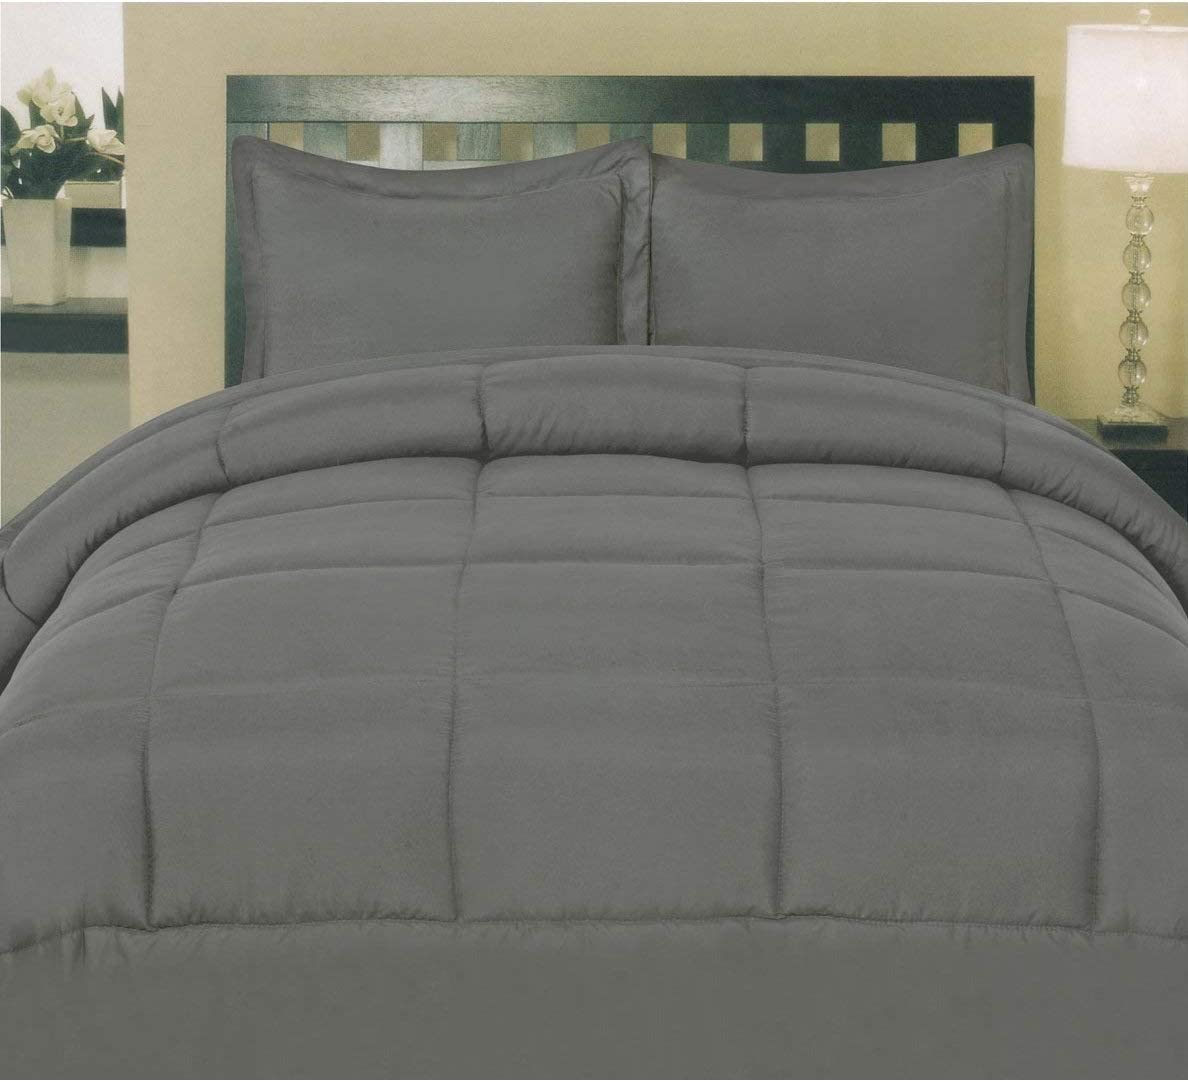 AP Beddings Hotel Max 66% OFF Collection 35% OFF - Comforter Piece 500GSM Microfi 1